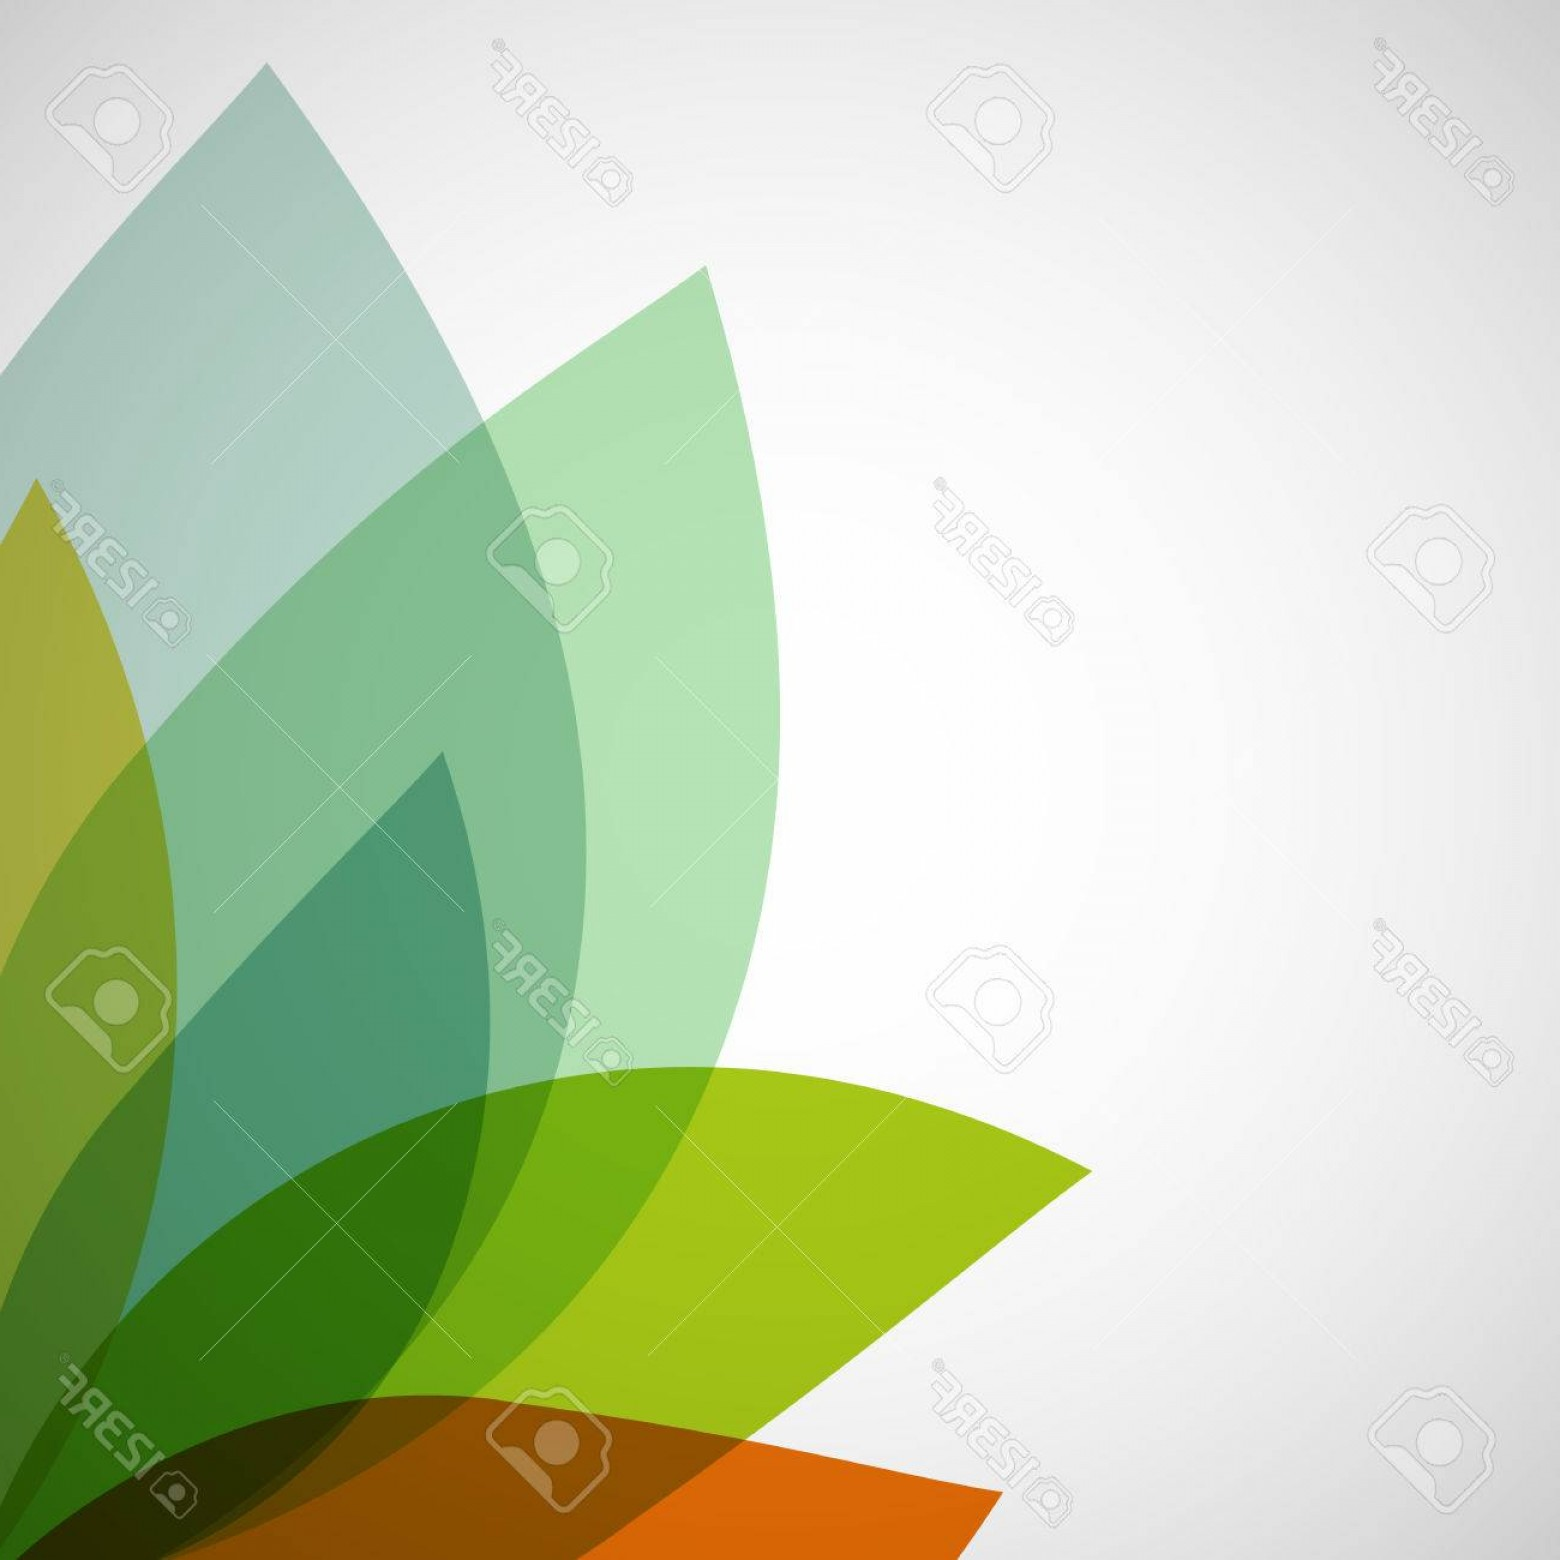 Transparent Brown Vector Background: Photostock Vector Abstract Background Of Transparent Leaves Vector Image